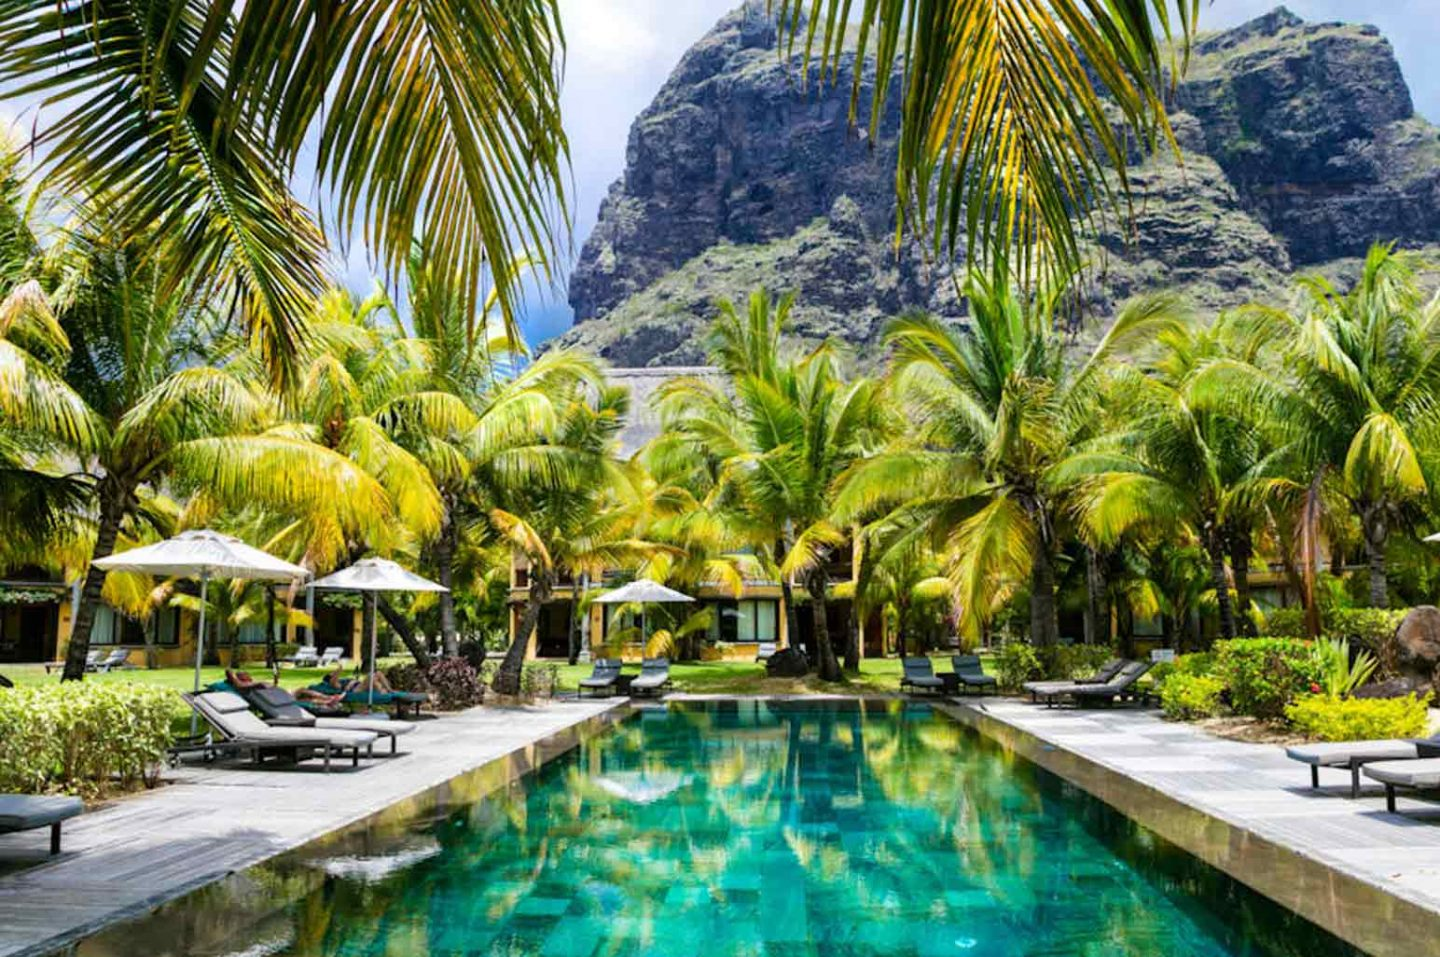 What To Expect In Sustainable And Eco-Friendly Resorts